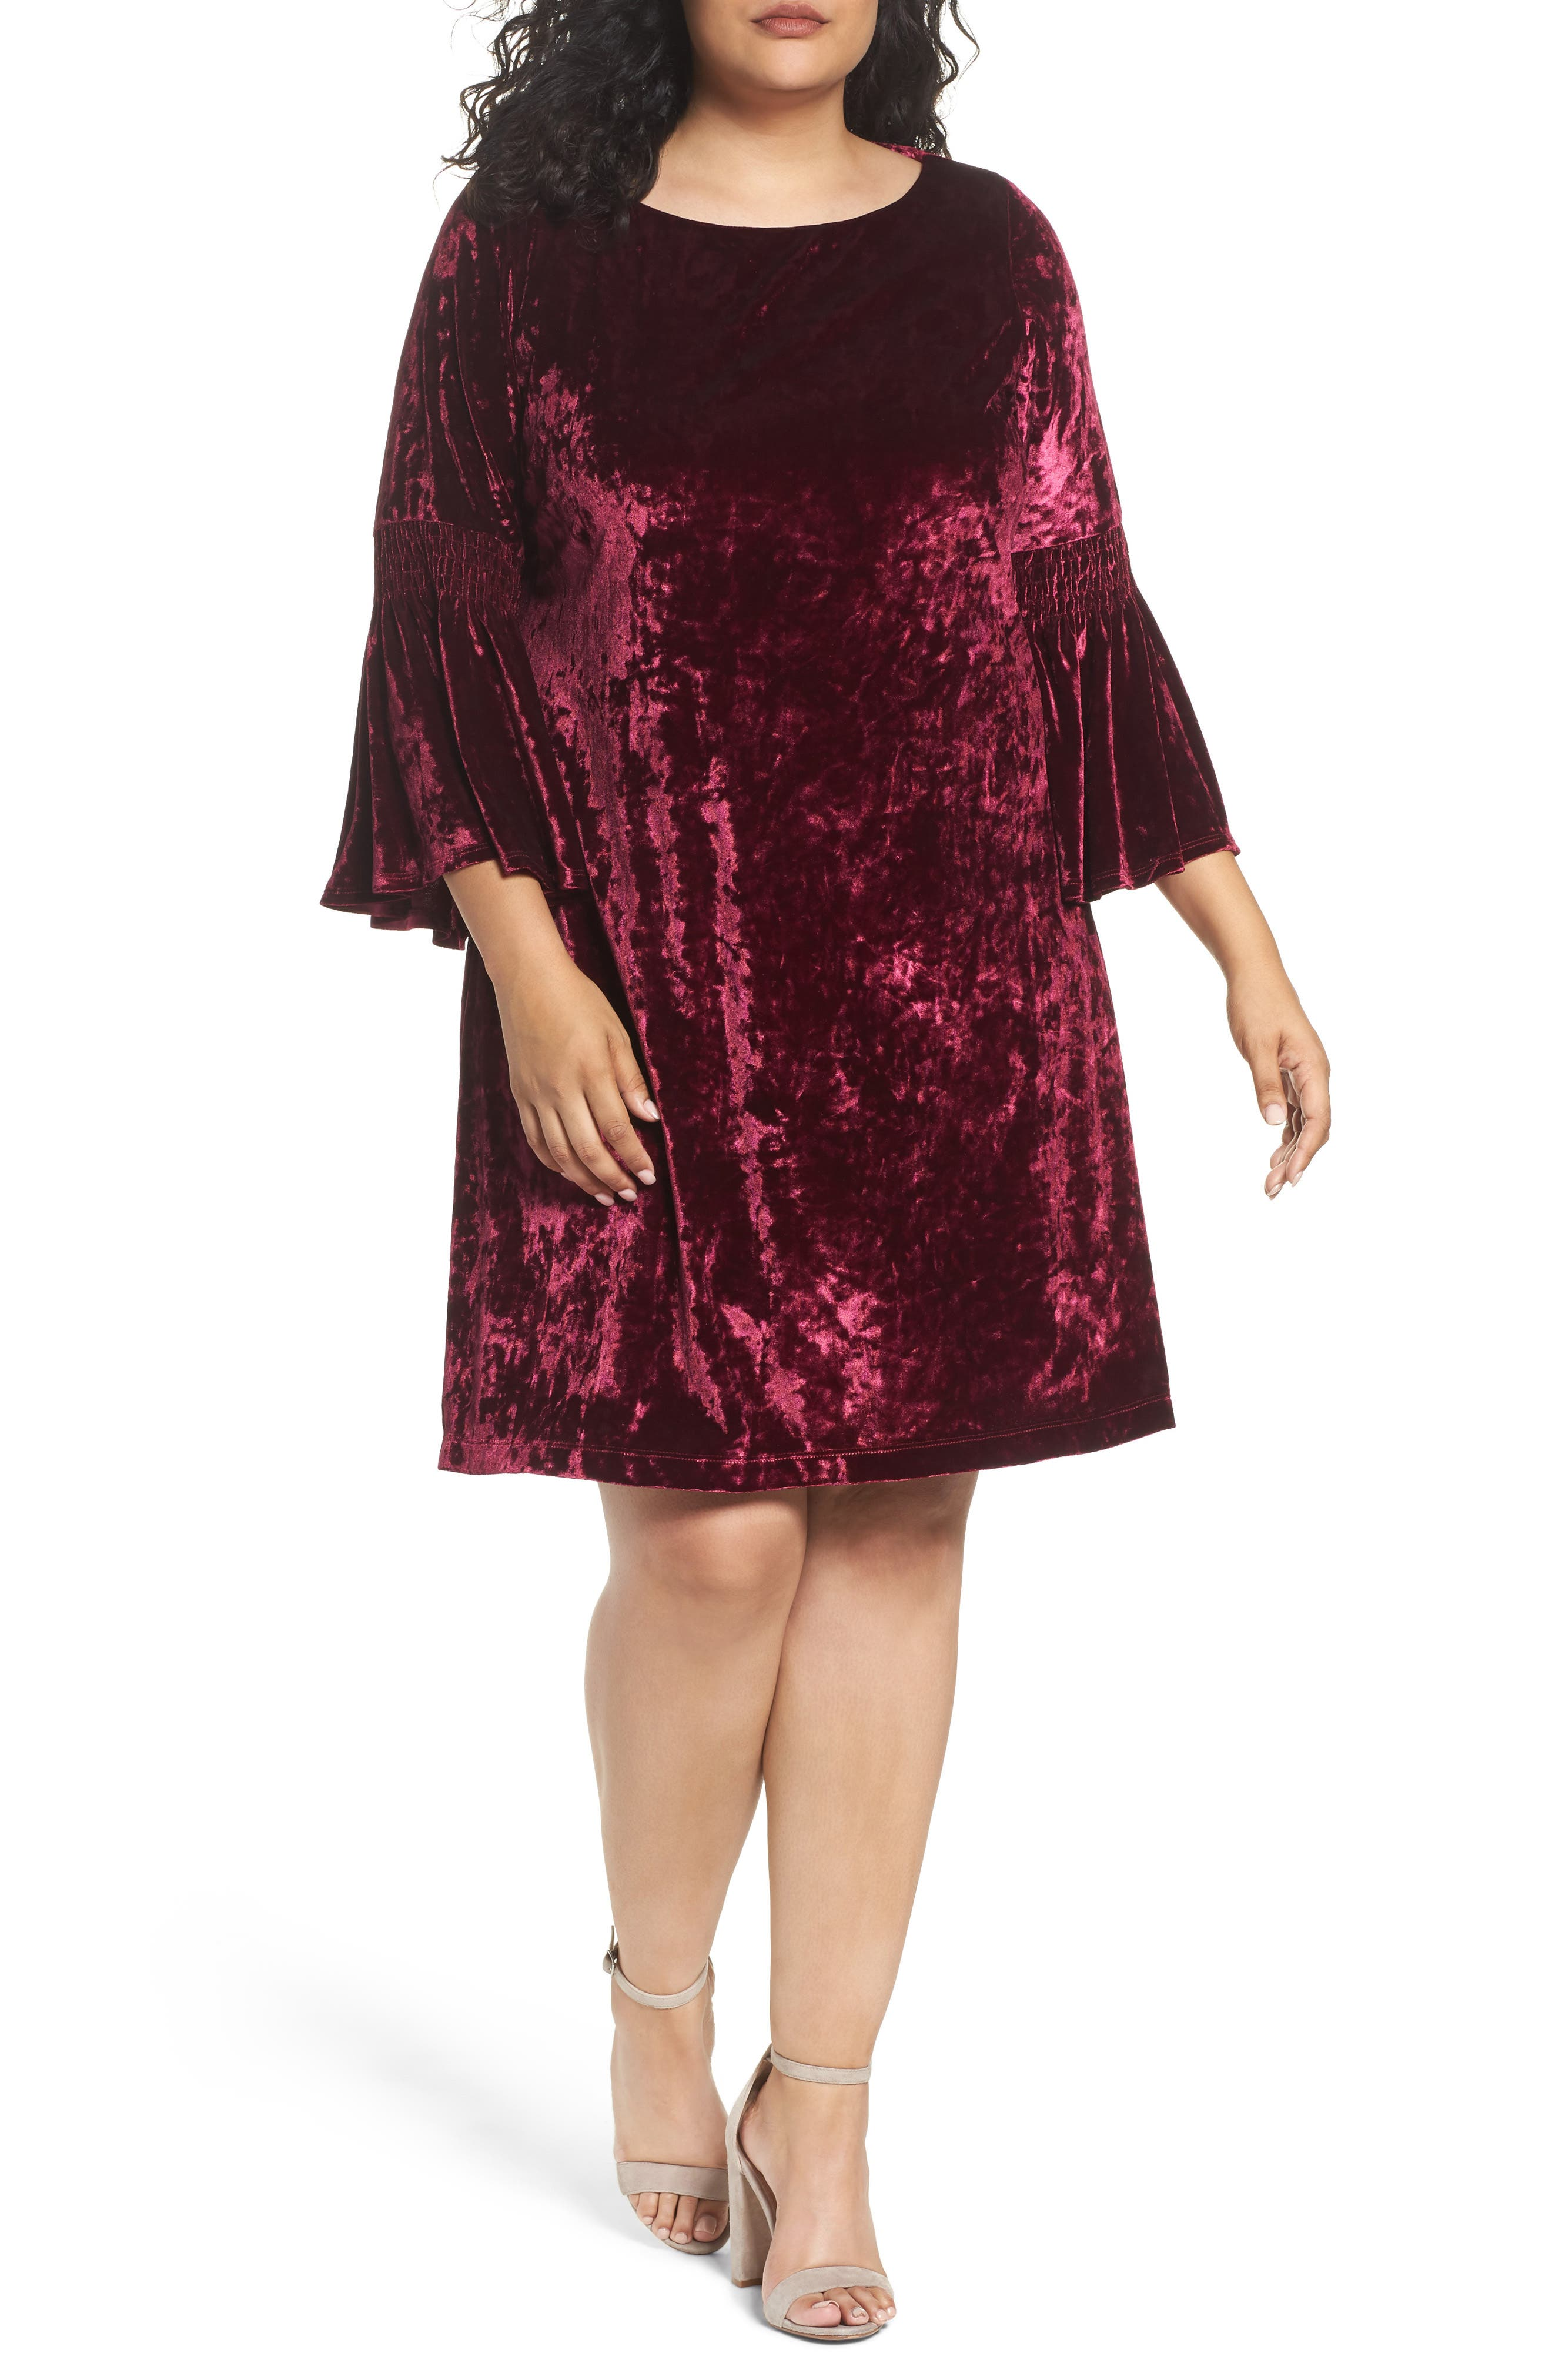 Gabby Skye Bell Sleeve Velvet Shift Dress (Plus Size)